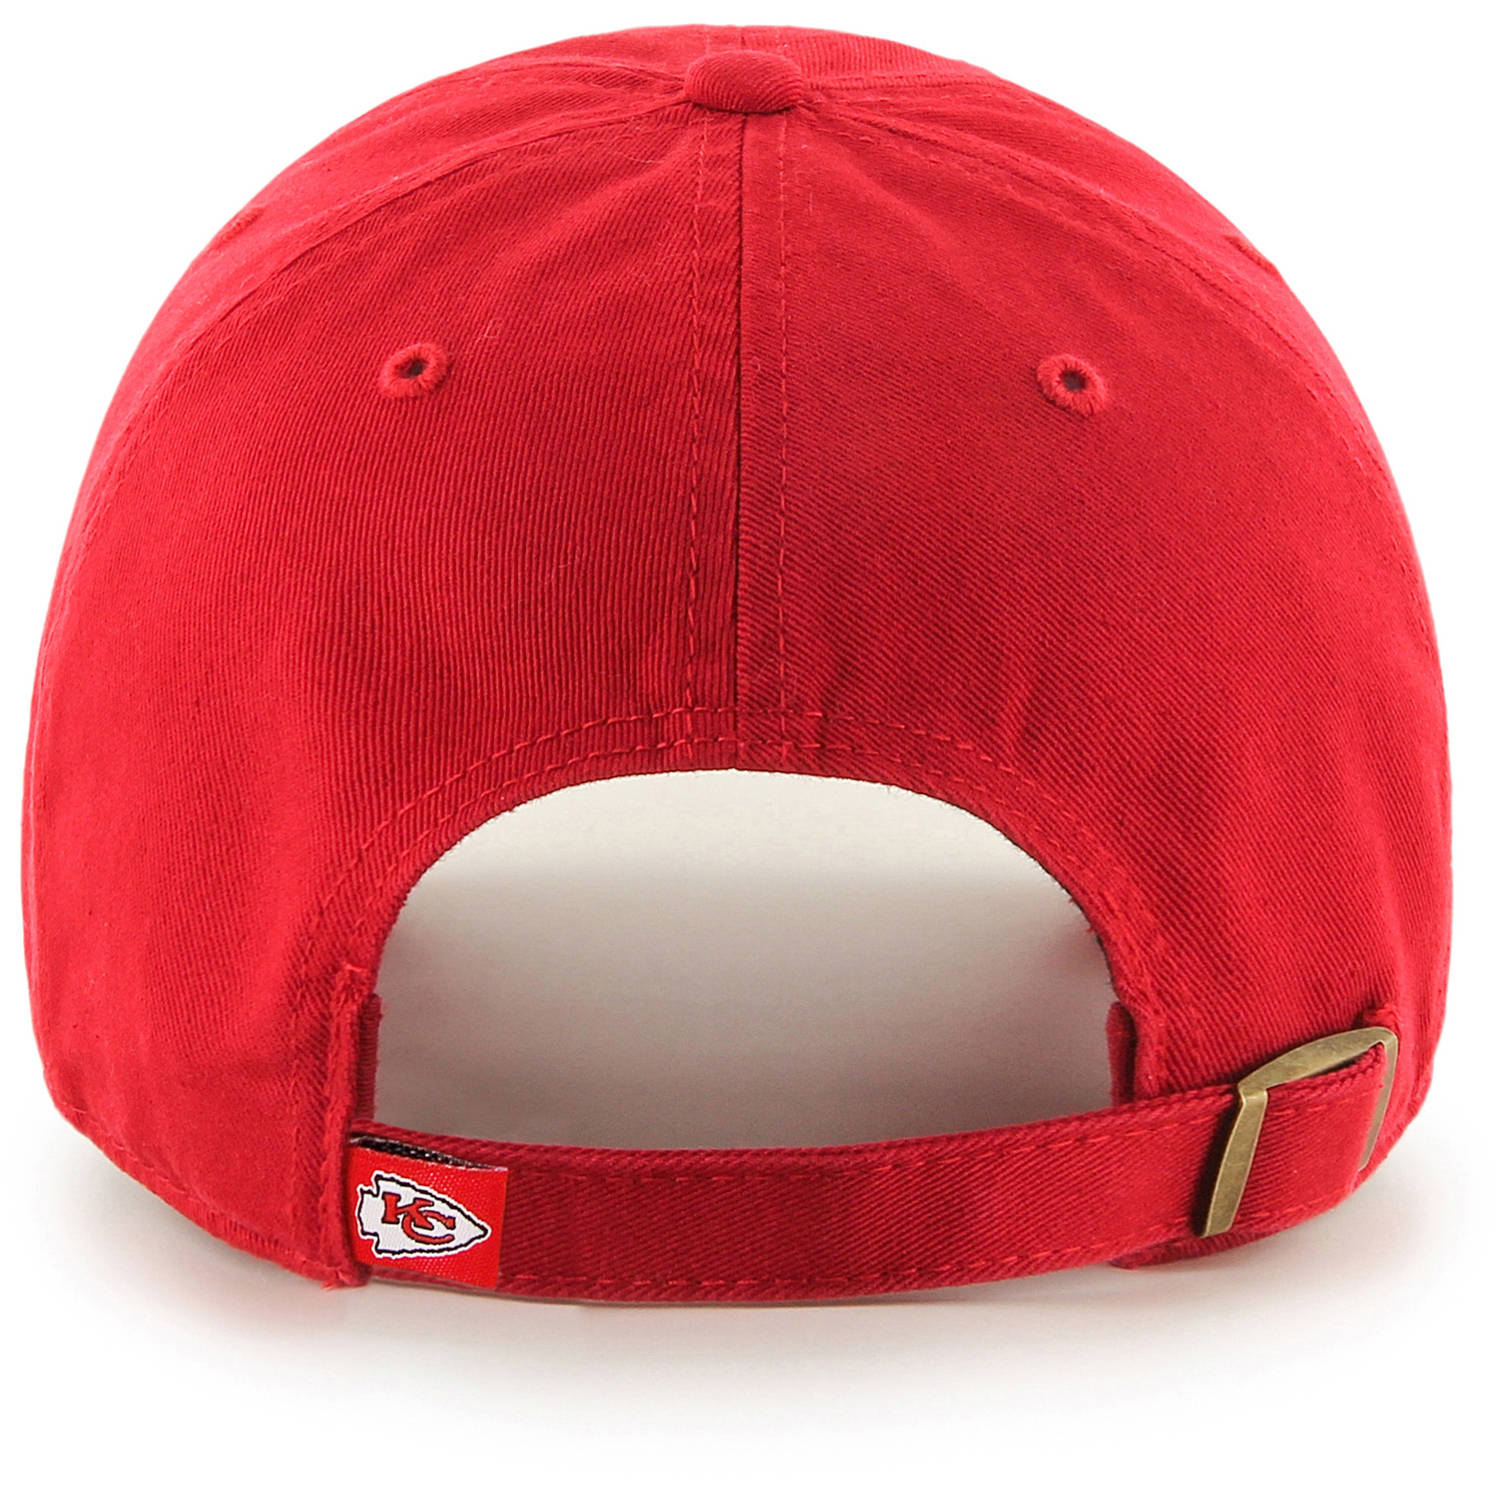 NFL Kansas City Chiefs Mass Clean Up Cap - Fan Favorite - Walmart.com 11e13082fed6